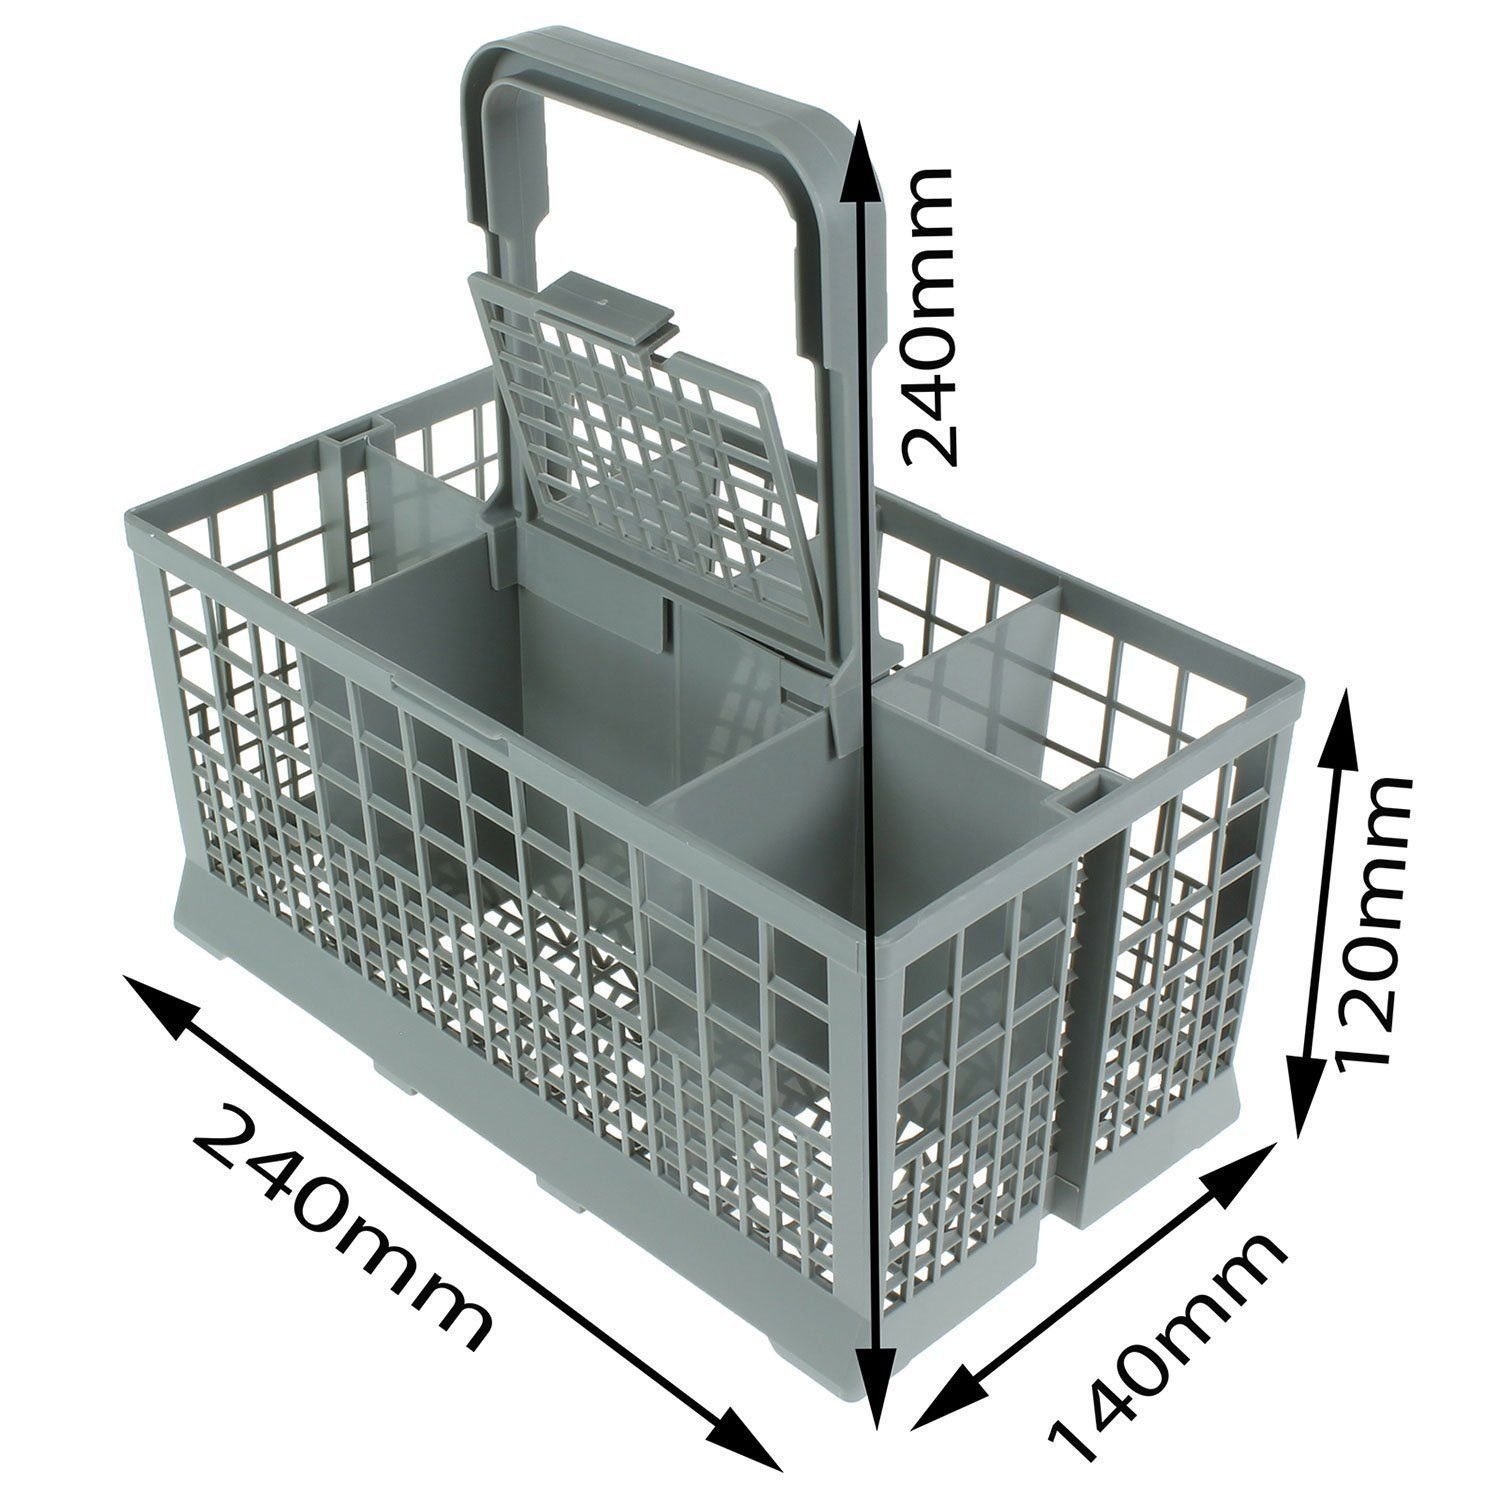 Details About Universal Dishwasher Cutlery Silverware Basket For